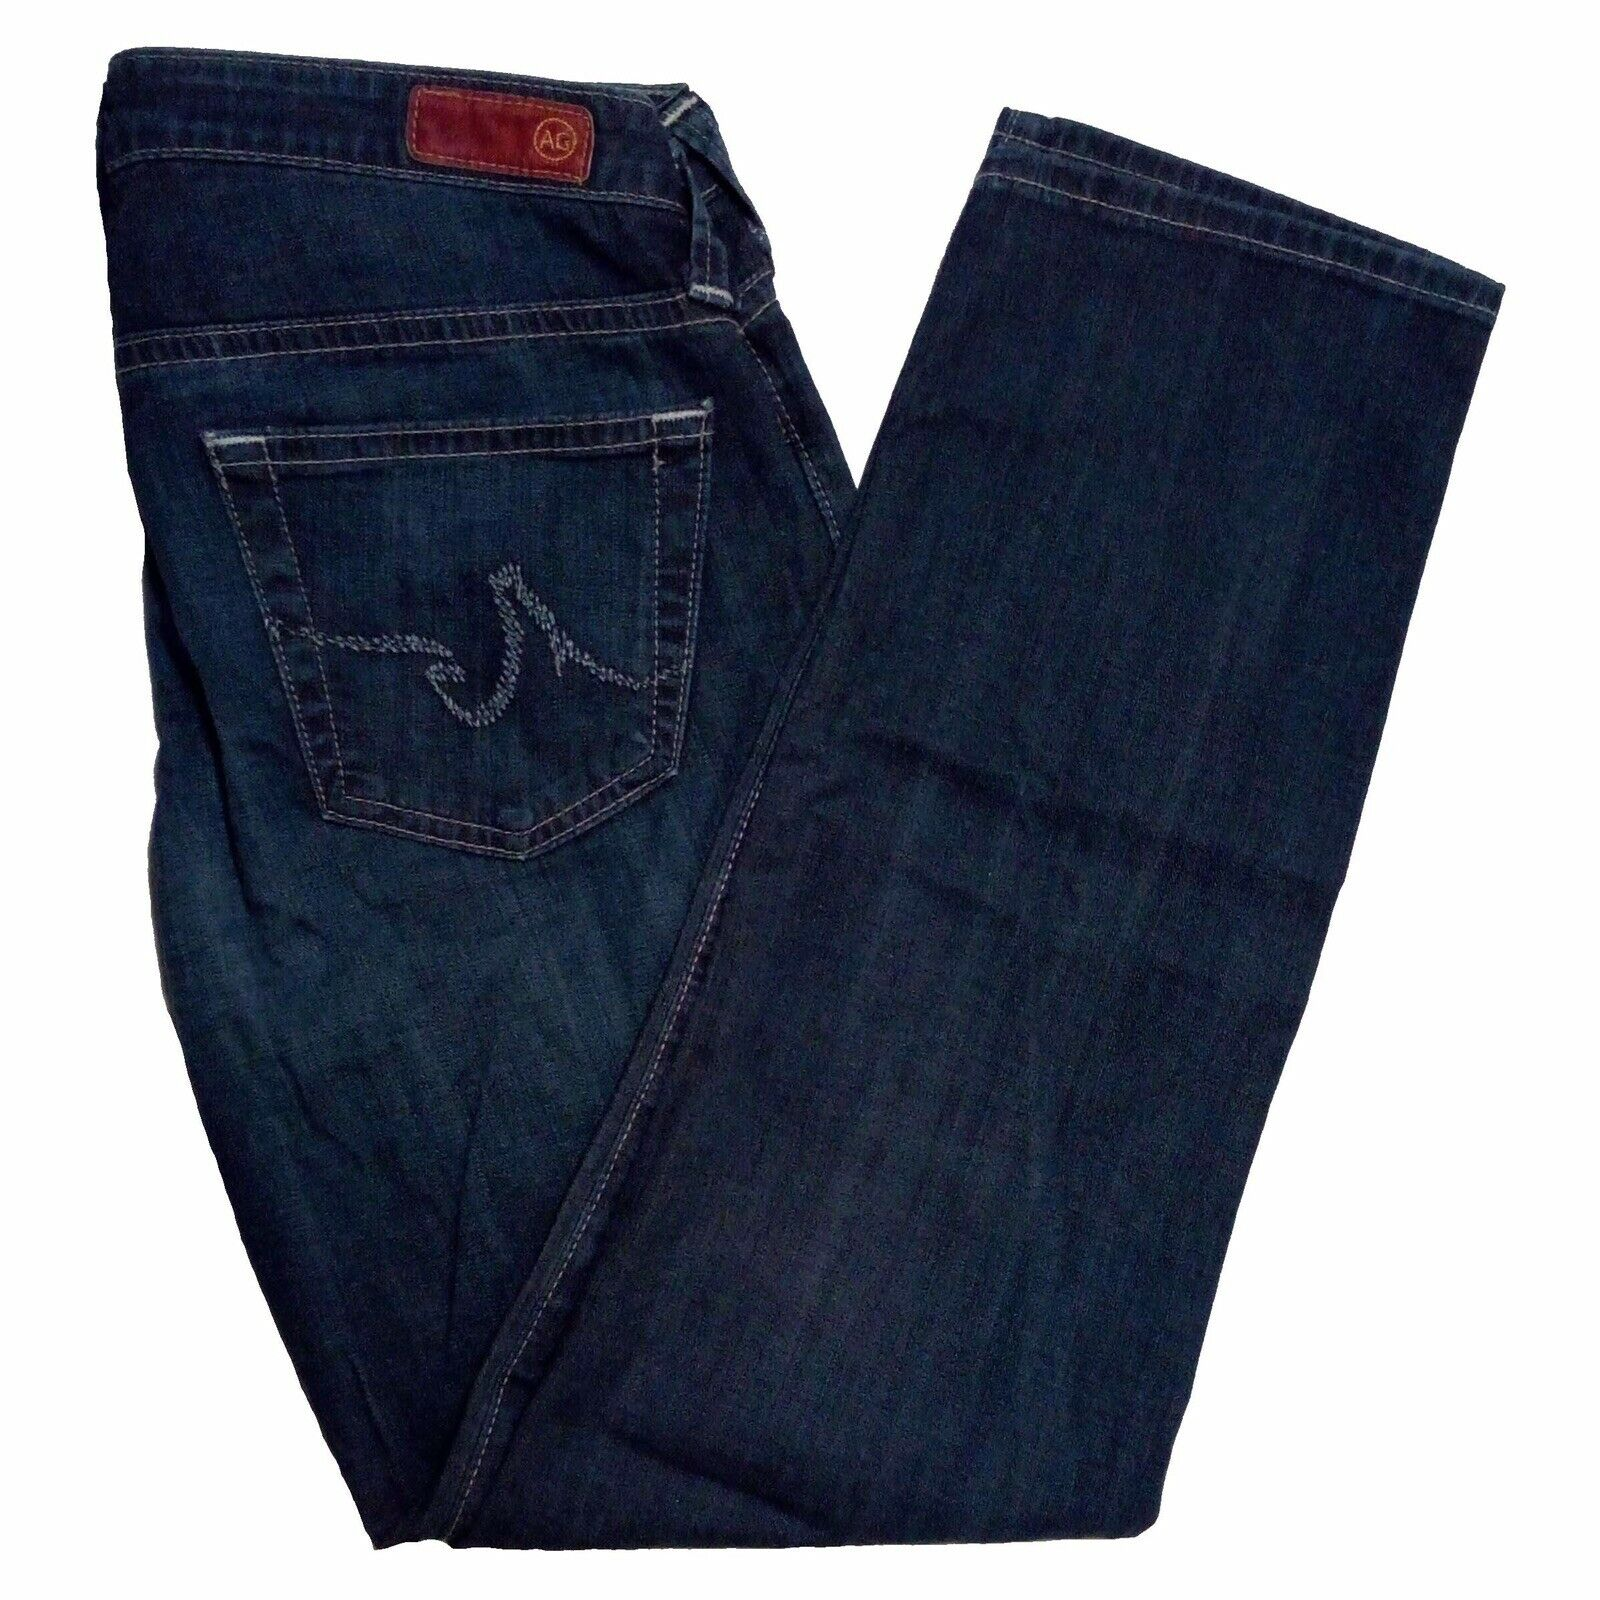 The Mirage Ag Adriano goldschmied Jeans Size 26R